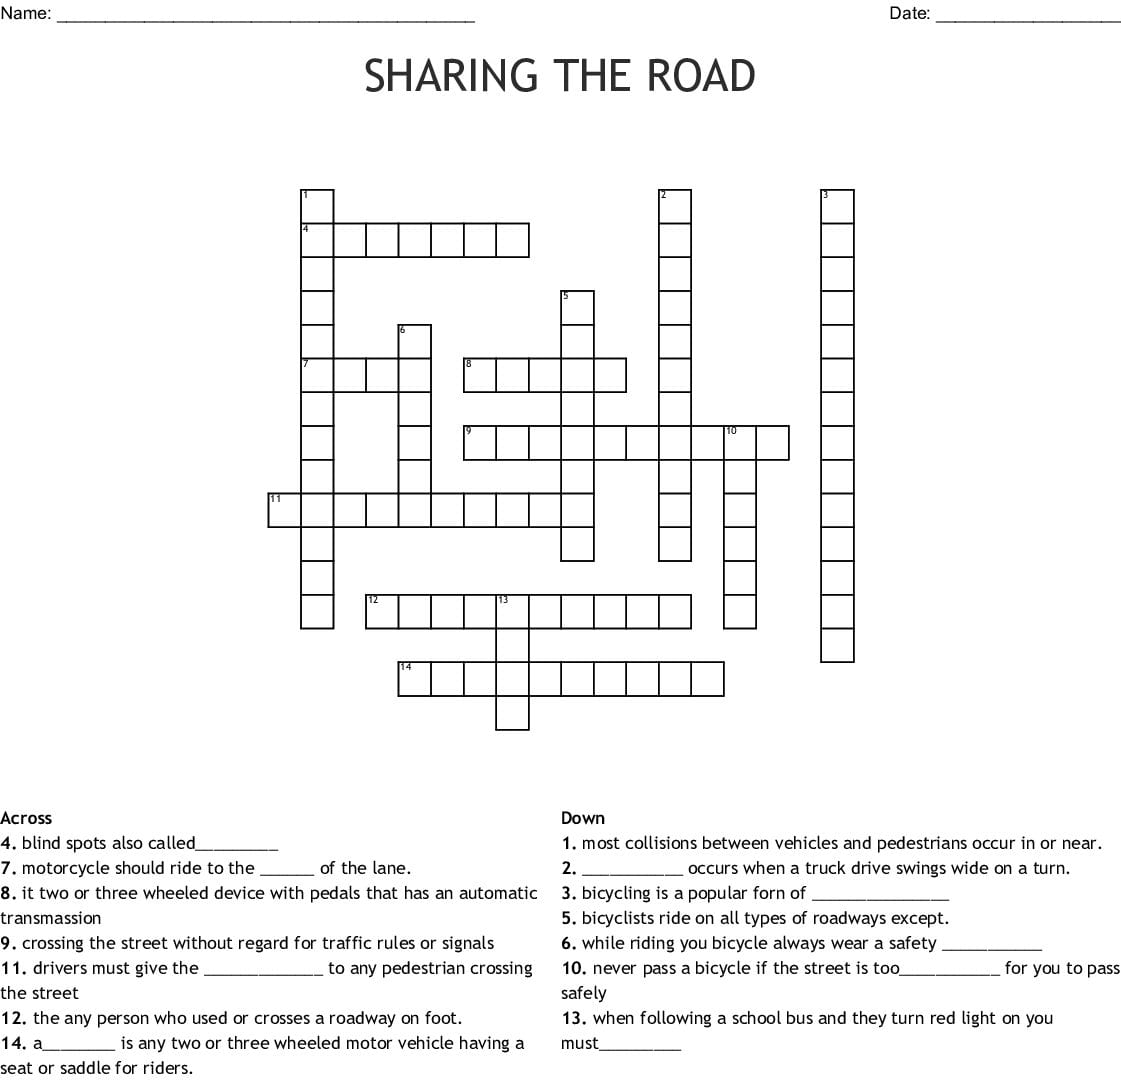 Chapter 2 Signs Signals And Roady Markings Crossword